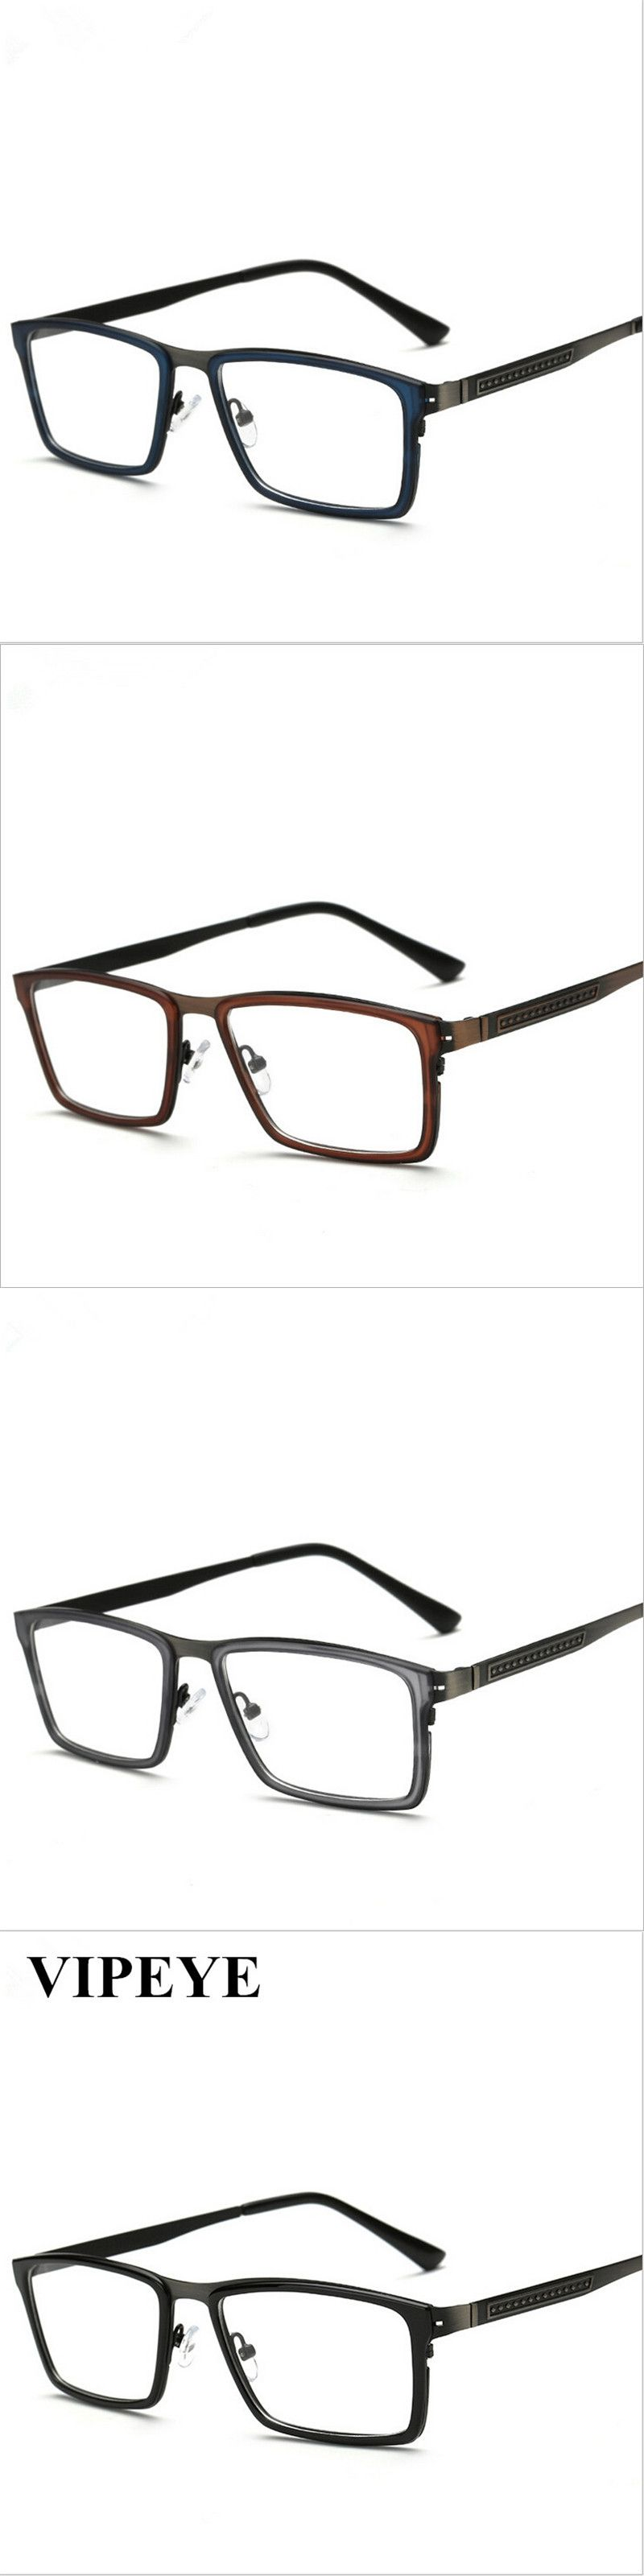 245a4e3805 Hot Style Big Square Frames Mens Glasses Alloy Frames For Lady And  Gentalmen Simple Shape Glass Frame Eyewear Wholesale